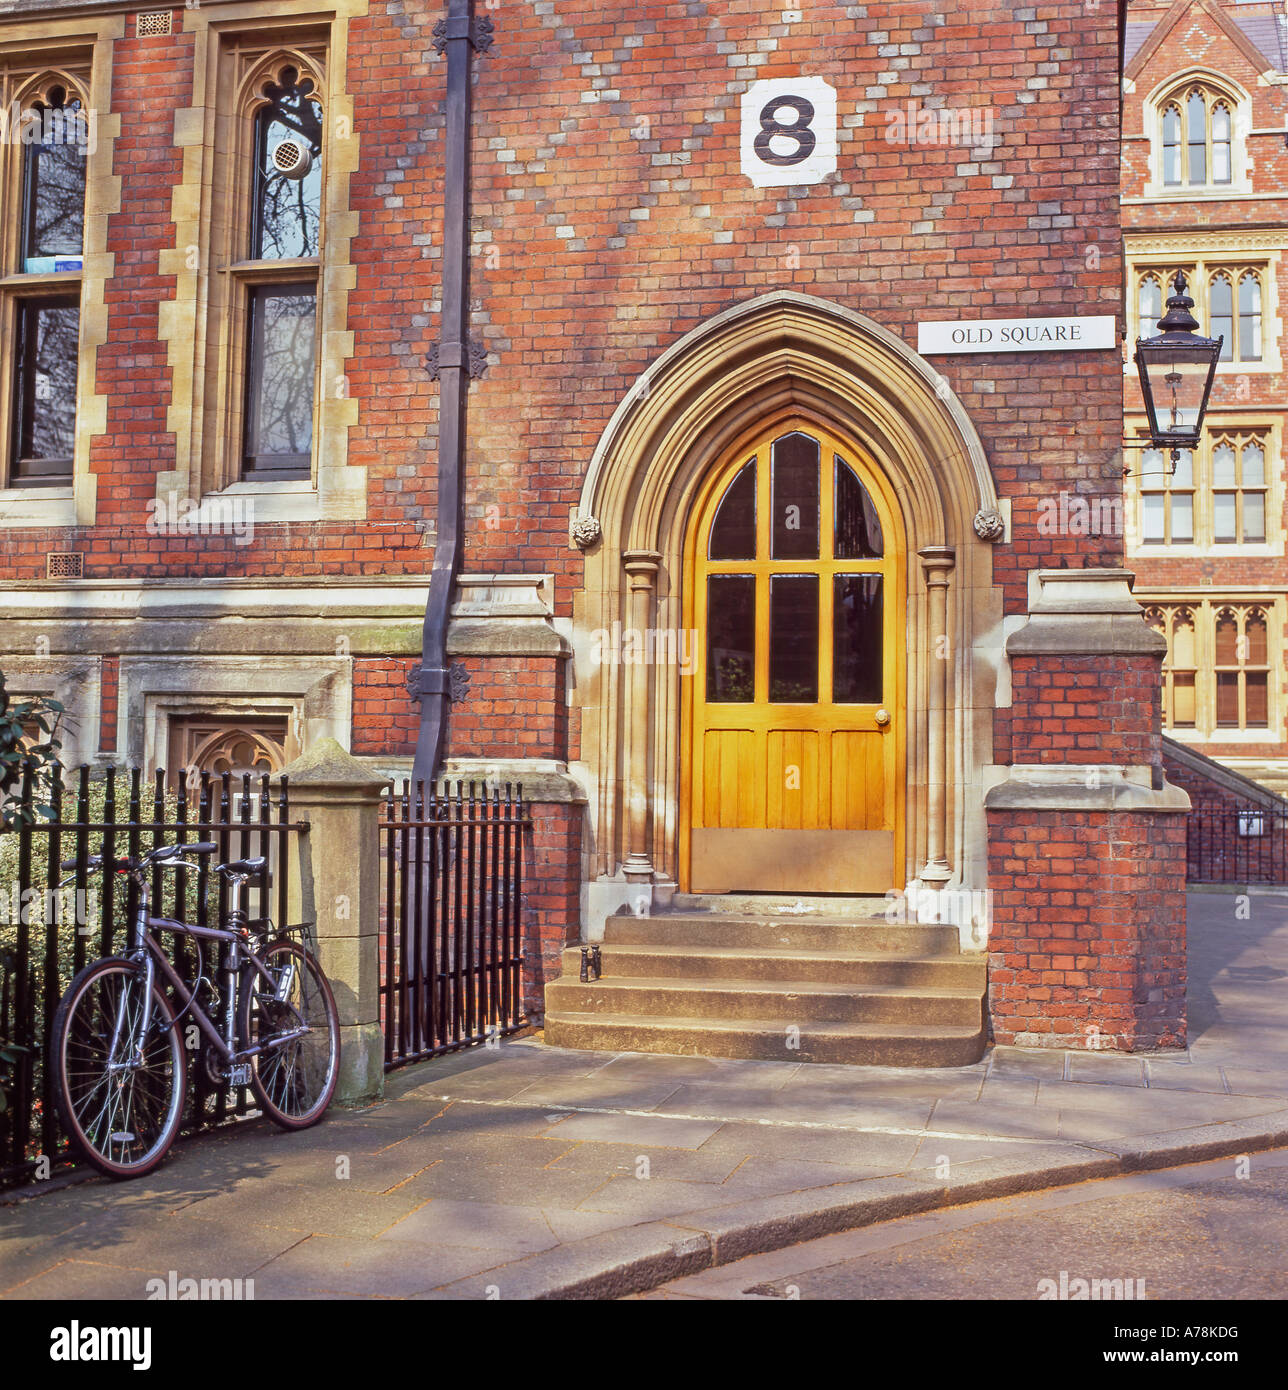 Door and entrance on building at 8 Old Square BUILDING exterior at Old Buildings Lincolns Inn, Inns of Court, London - Stock Image